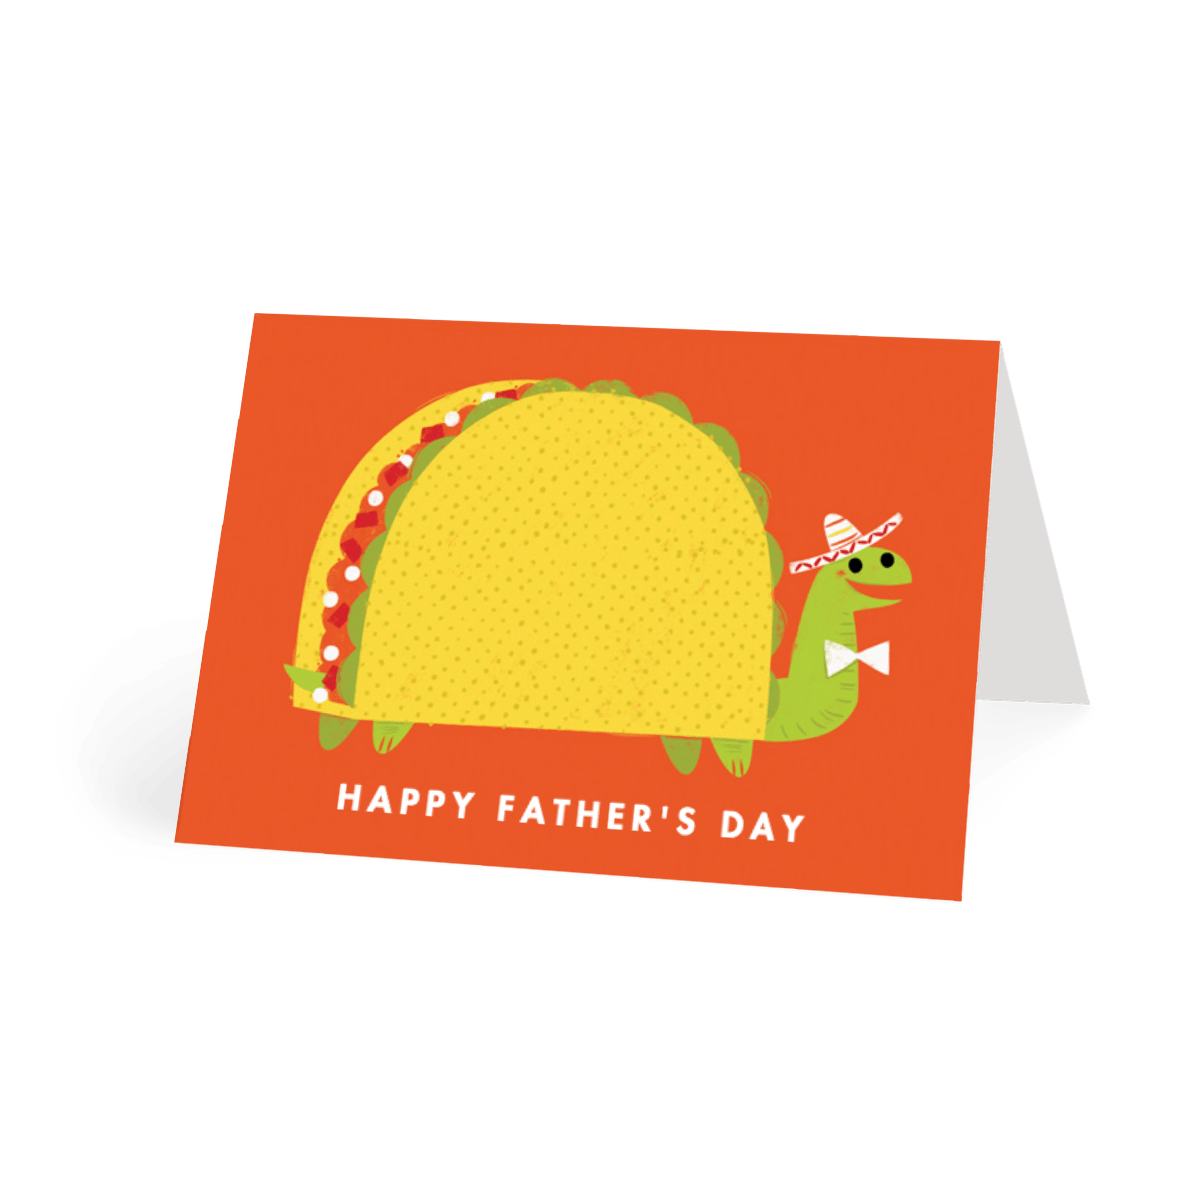 Https%3a%2f%2fwww.papier.com%2fproduct image%2f7306%2f14%2ftaco tortoise 1796 front 1463137616.png?ixlib=rb 1.1